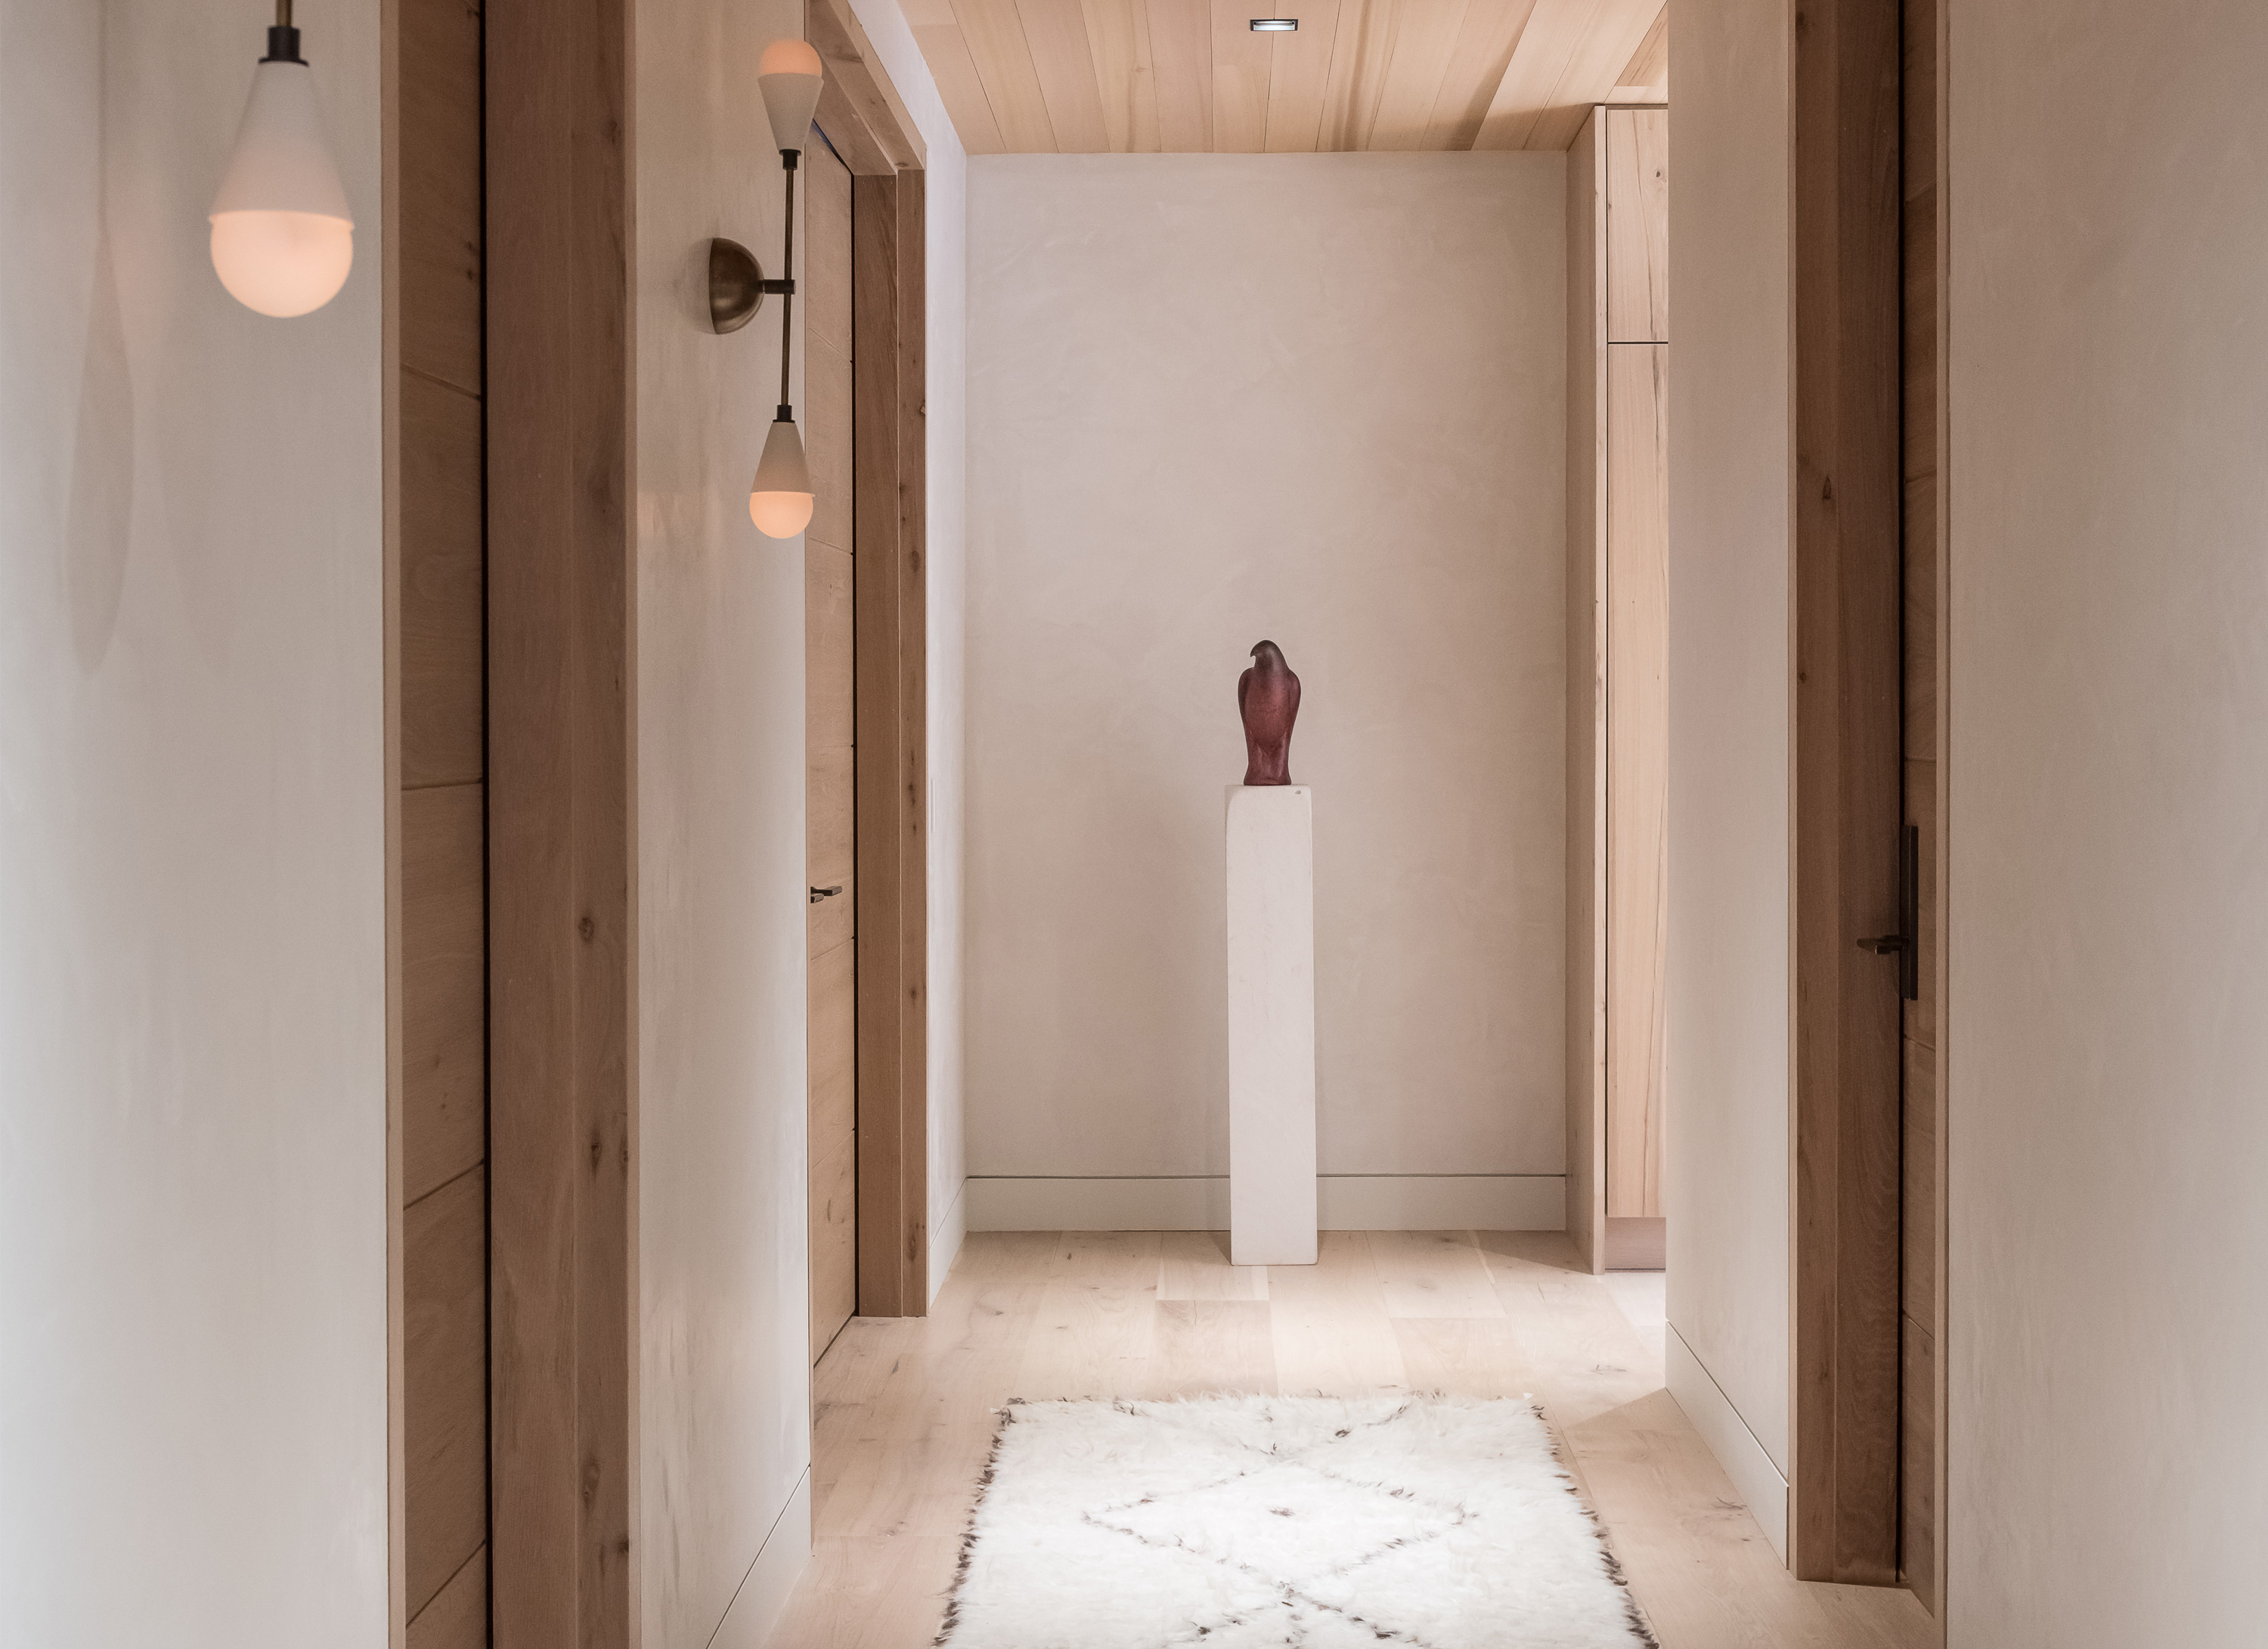 Valles Suite - Hallway with Statue of Eagle